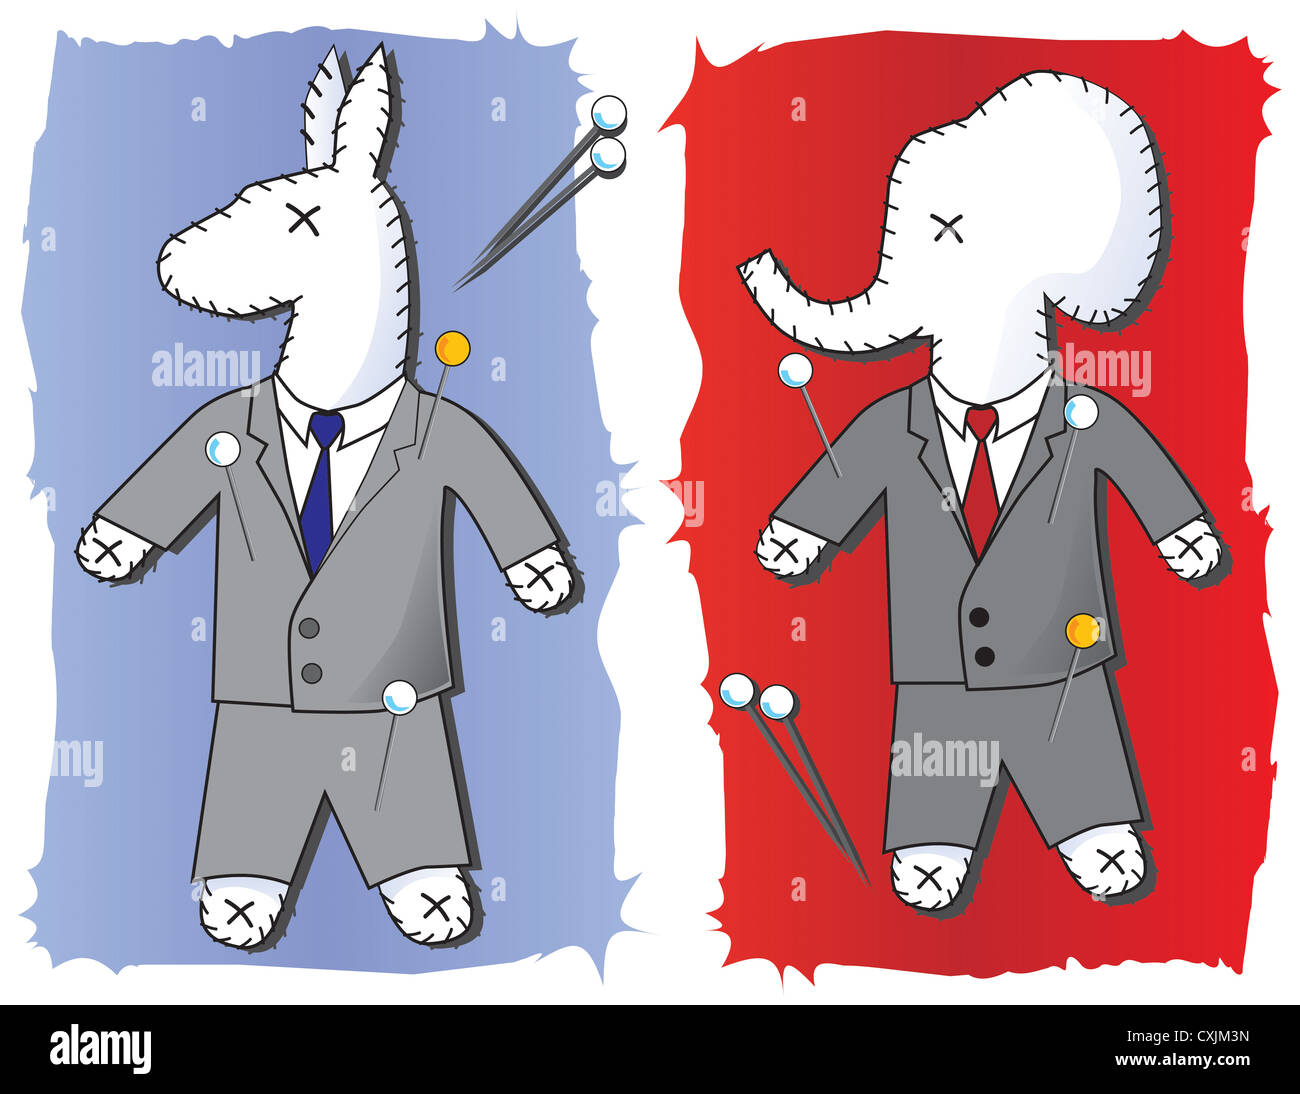 Concept drawing of  Political Voodoo Dolls in the Shape of the Democratic Donkey and Republican Elephants - Stock Image